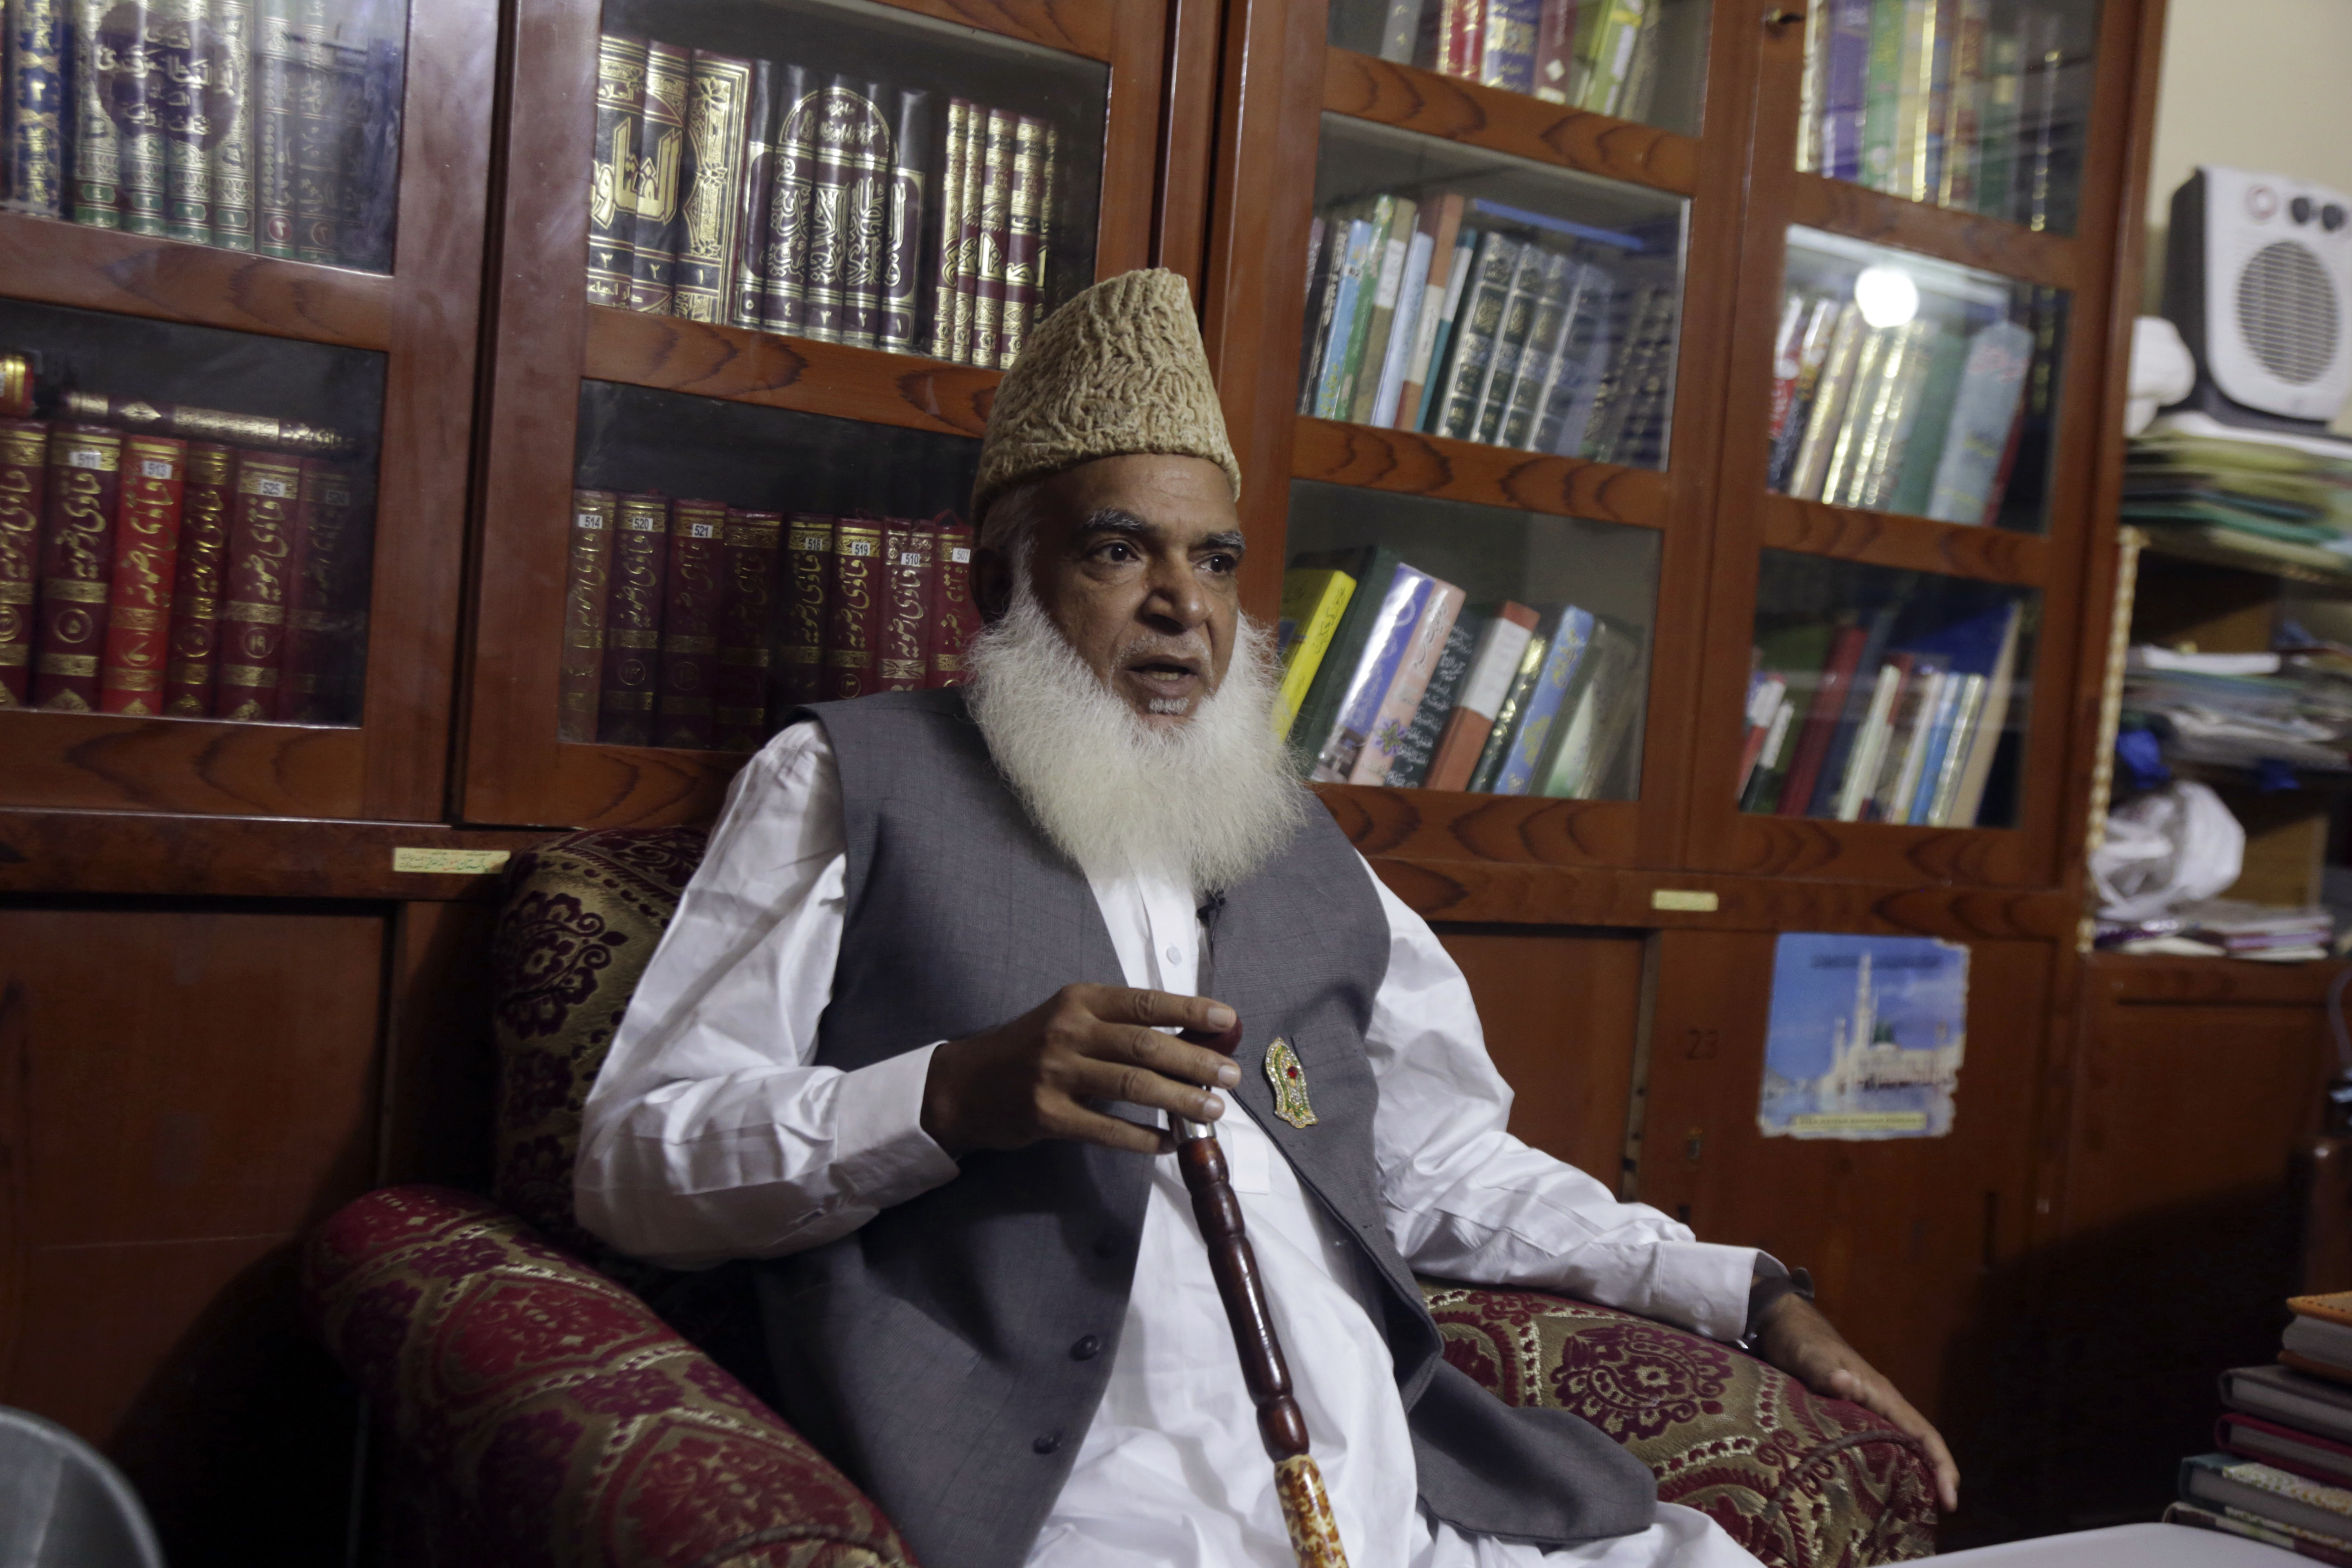 In this Tuesday, Nov. 6, 2018, photo, Pakistani cleric Muhammad Afzal Qadri, leader in the Tehreek-e-Labbaik Party talks about Christian woman Asia Bibi, in Gujrat, Pakistan. The Christian woman acquitted after eight years on death row for blasphemy was released but her whereabouts in Islamabad on Thursday, Nov. 8 remained a closely guarded secret in the wake of demands by radical Islamists that she be publicly executed. Following her acquittal, the hard-line Tehreek-e-Labbaik Party forced a country-wide shut down as their supporters took to the streets for three days to protest Bibi's release. (AP Photo/K.M. Chaudary)